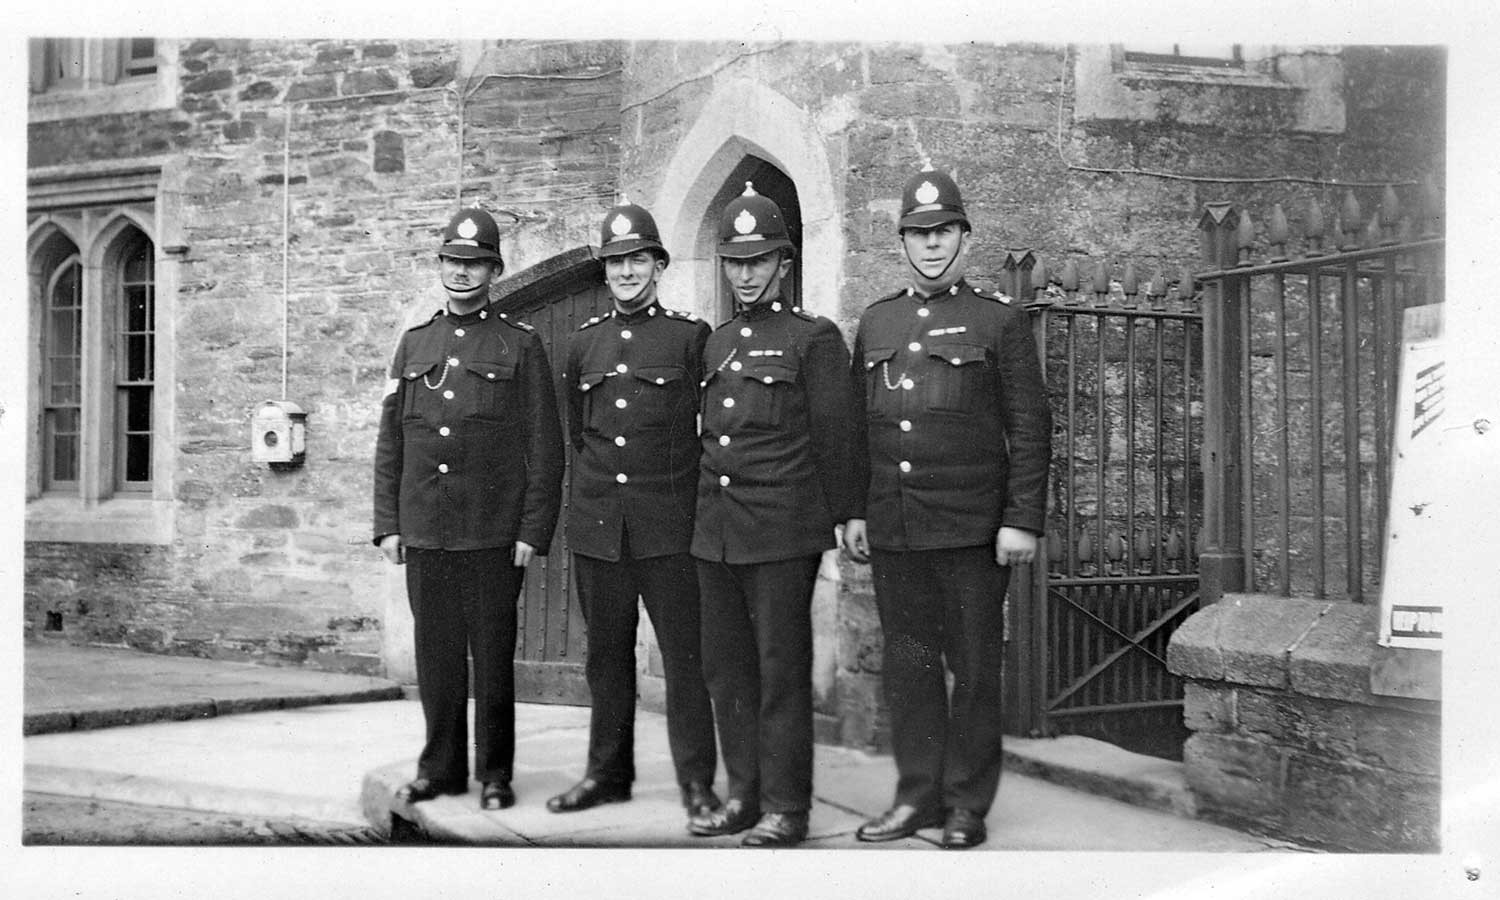 Policemen outside Tavistock Police Station, 1930. With thanks to Simon Dell.